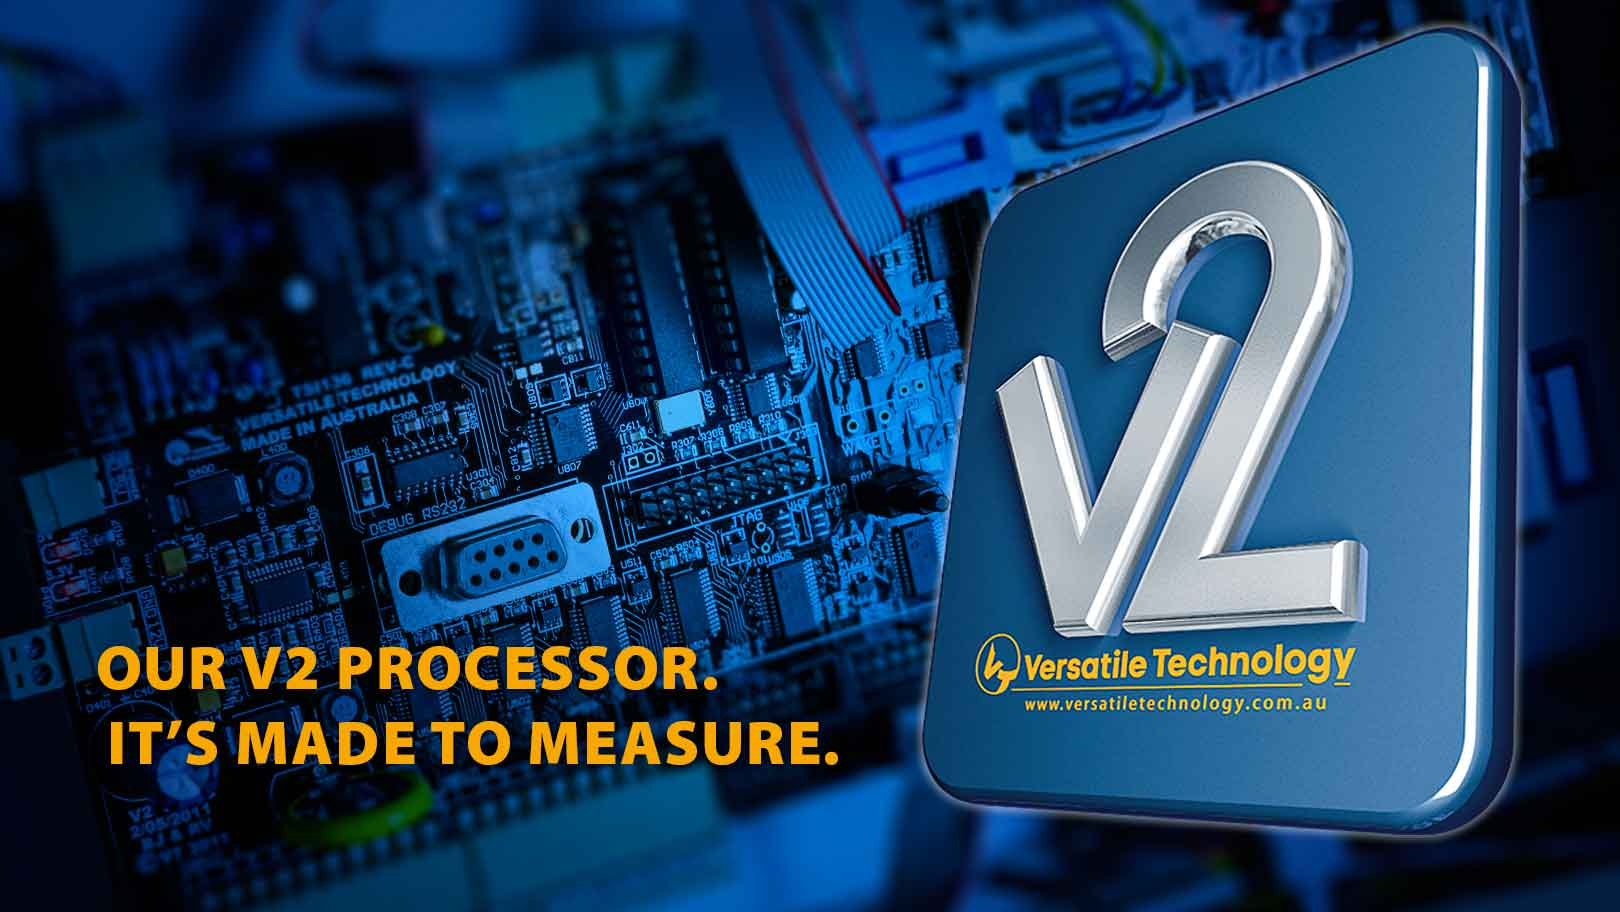 Our V2 Processor is made to measure.